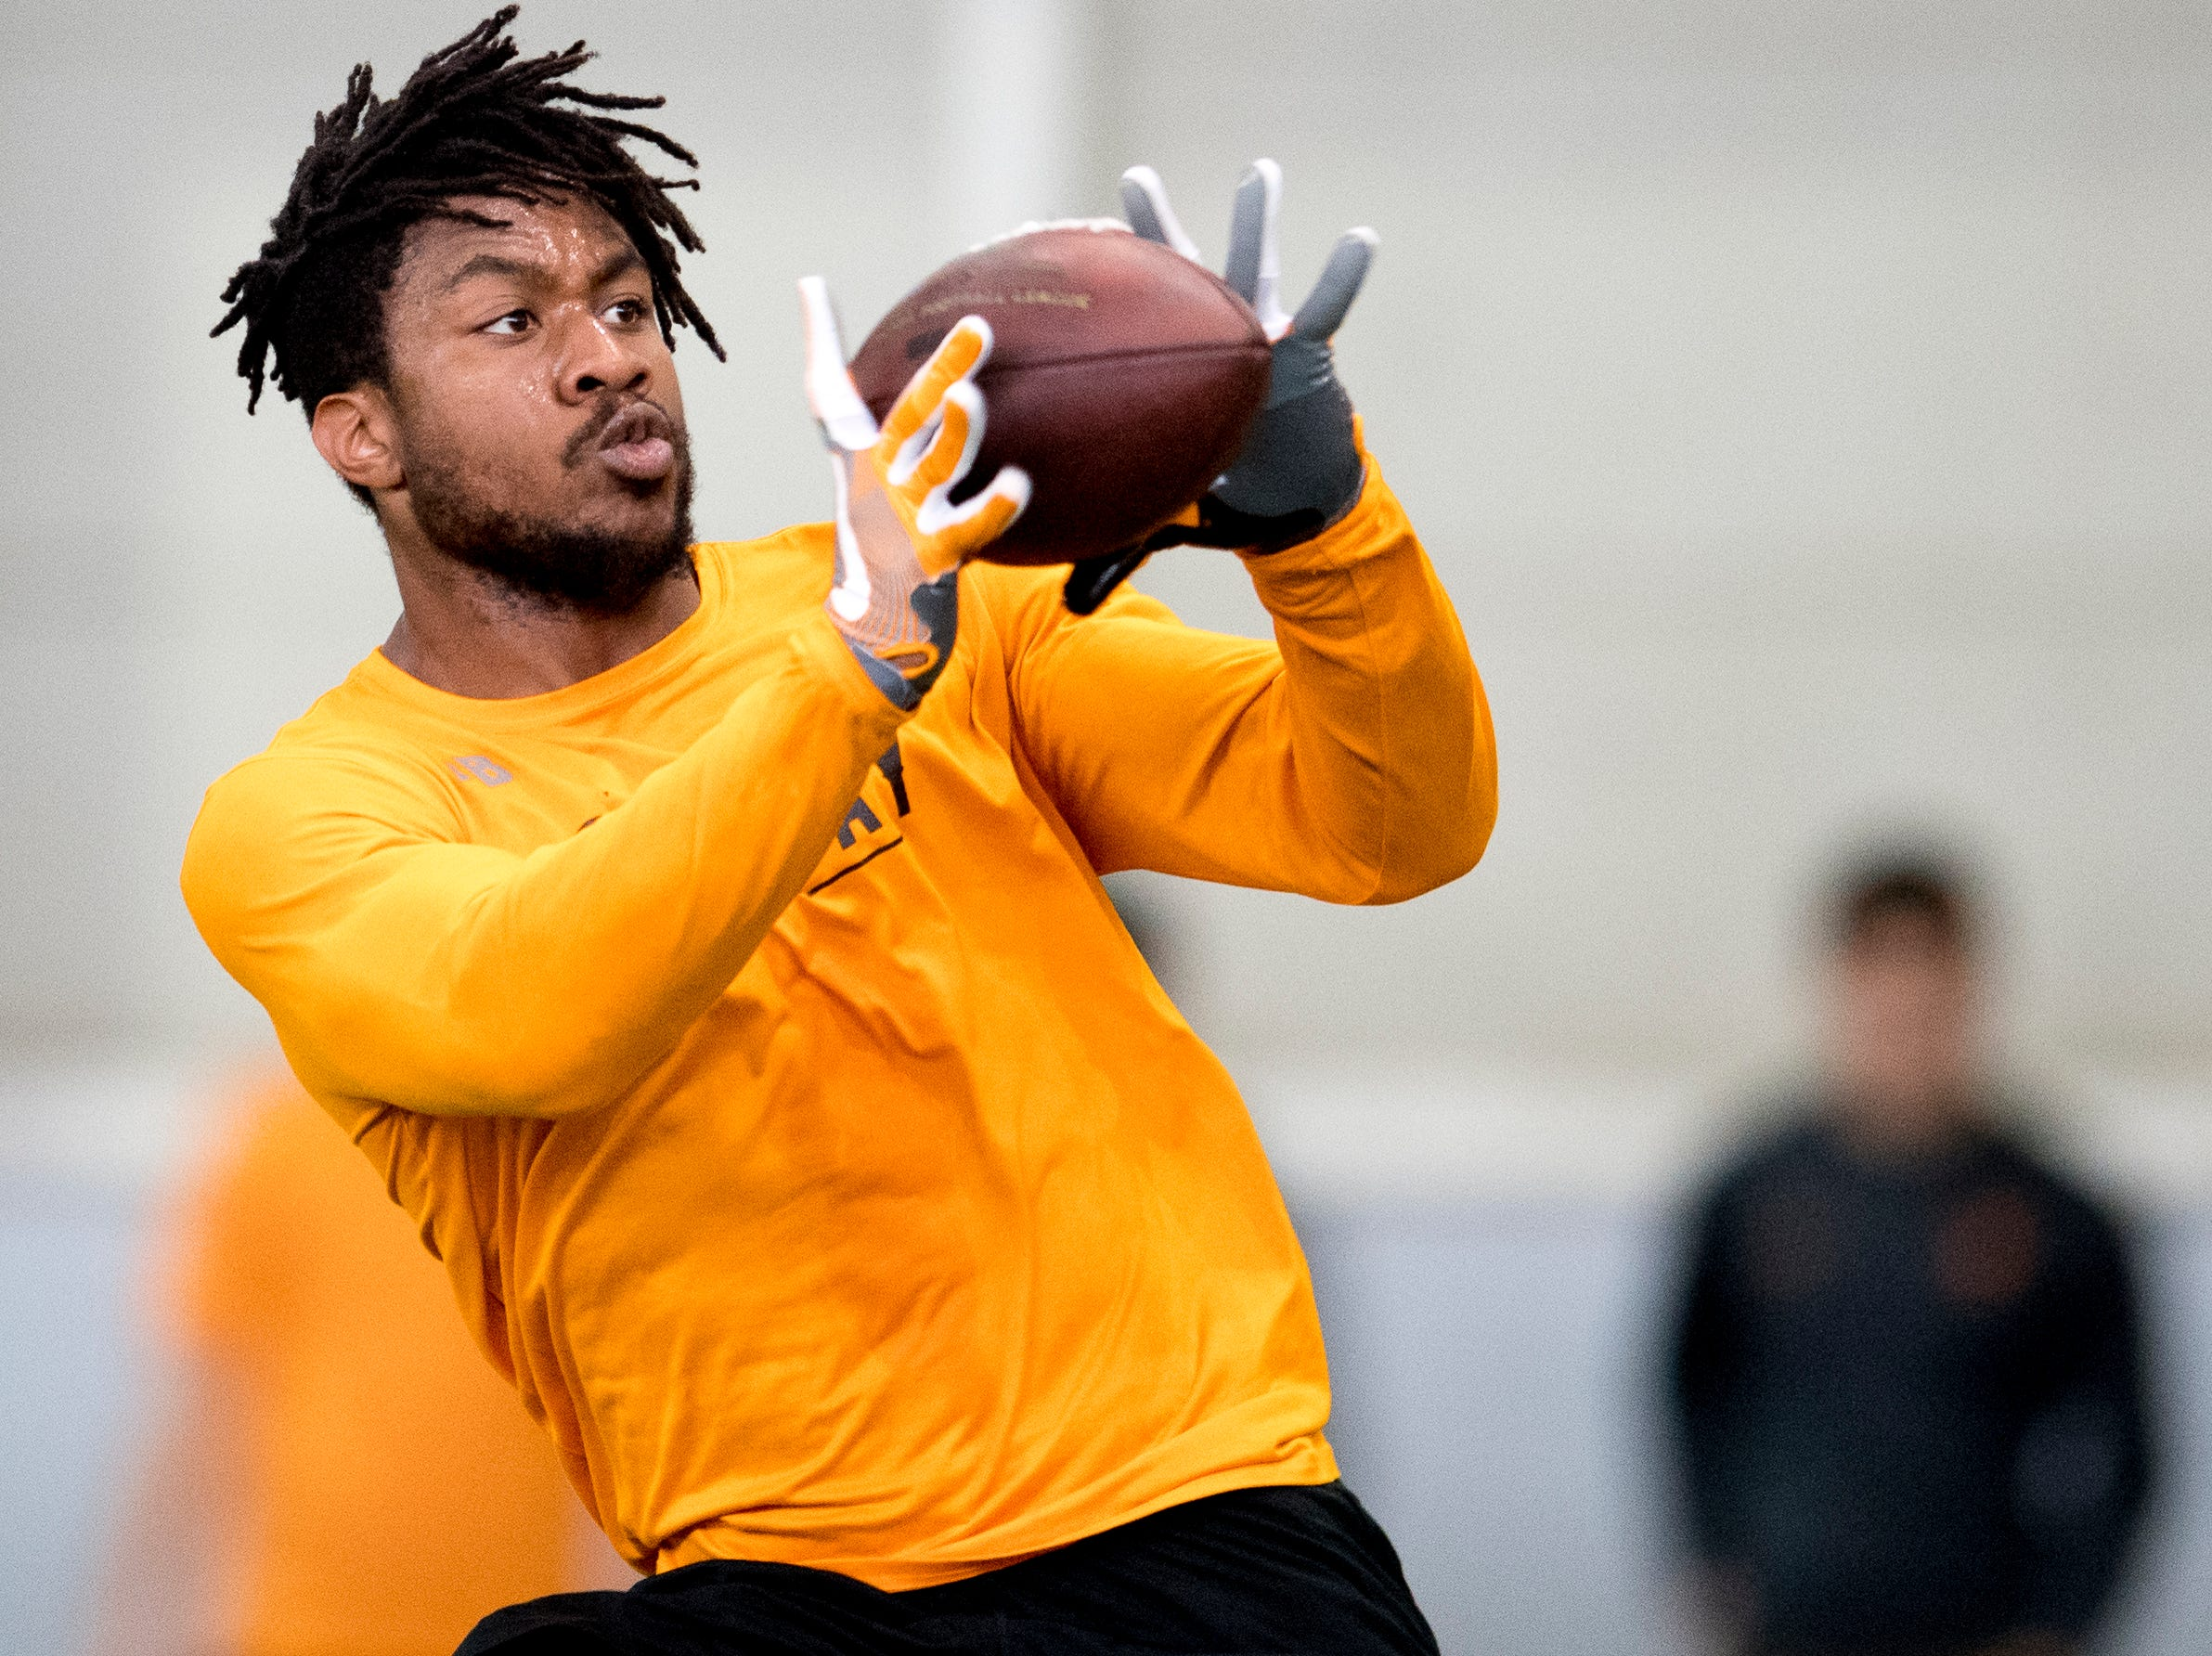 Madre London makes a catch at Tennessee Pro Day at Anderson Training Facility in Knoxville, Tennessee on Thursday, March 14, 2019. Draft prospects from Tennessee and other schools worked out before NFL scouts.